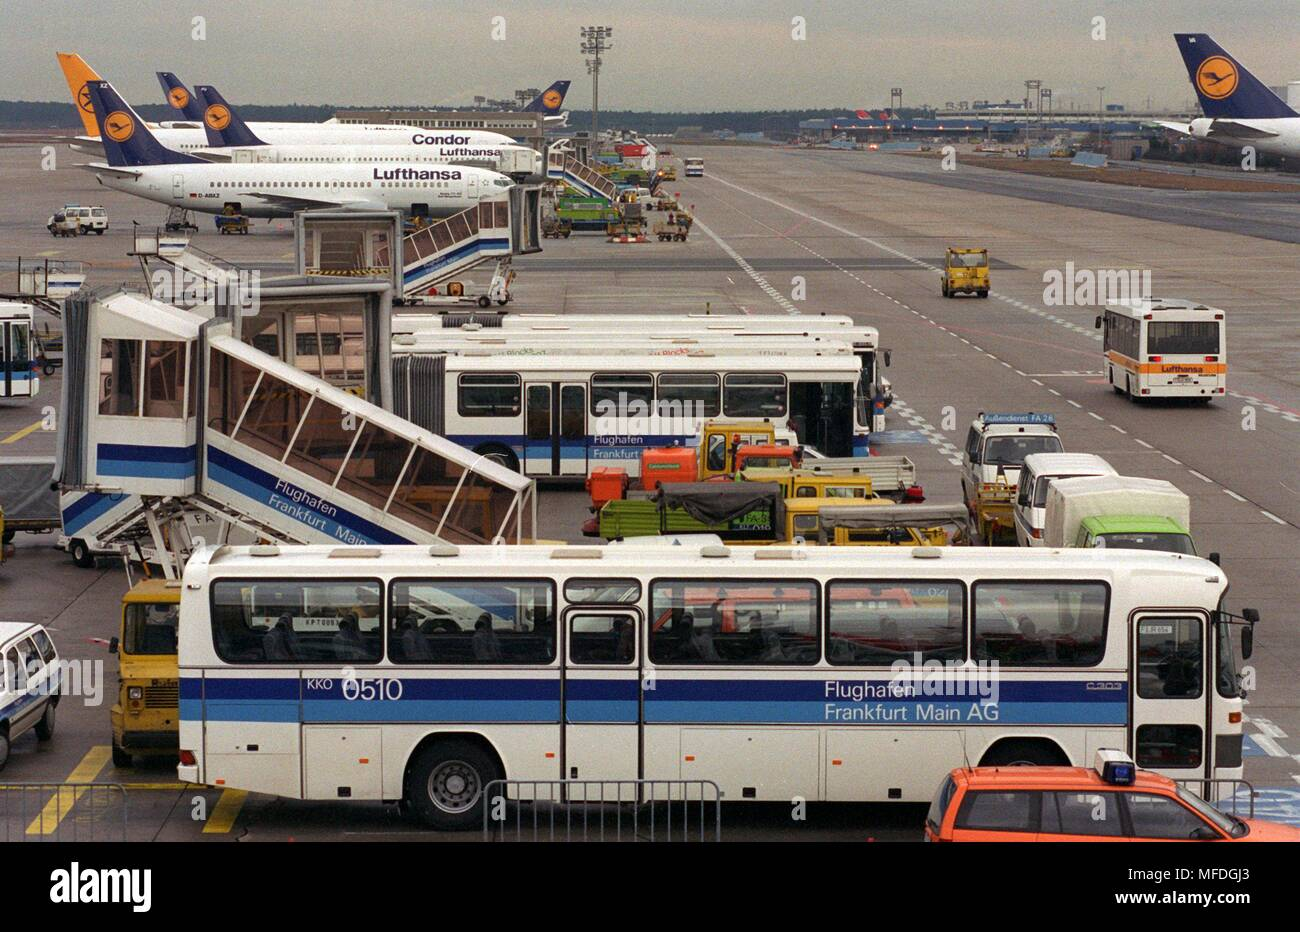 Flughafen Frankfurt Main Ag High Resolution Stock Photography And Images Alamy